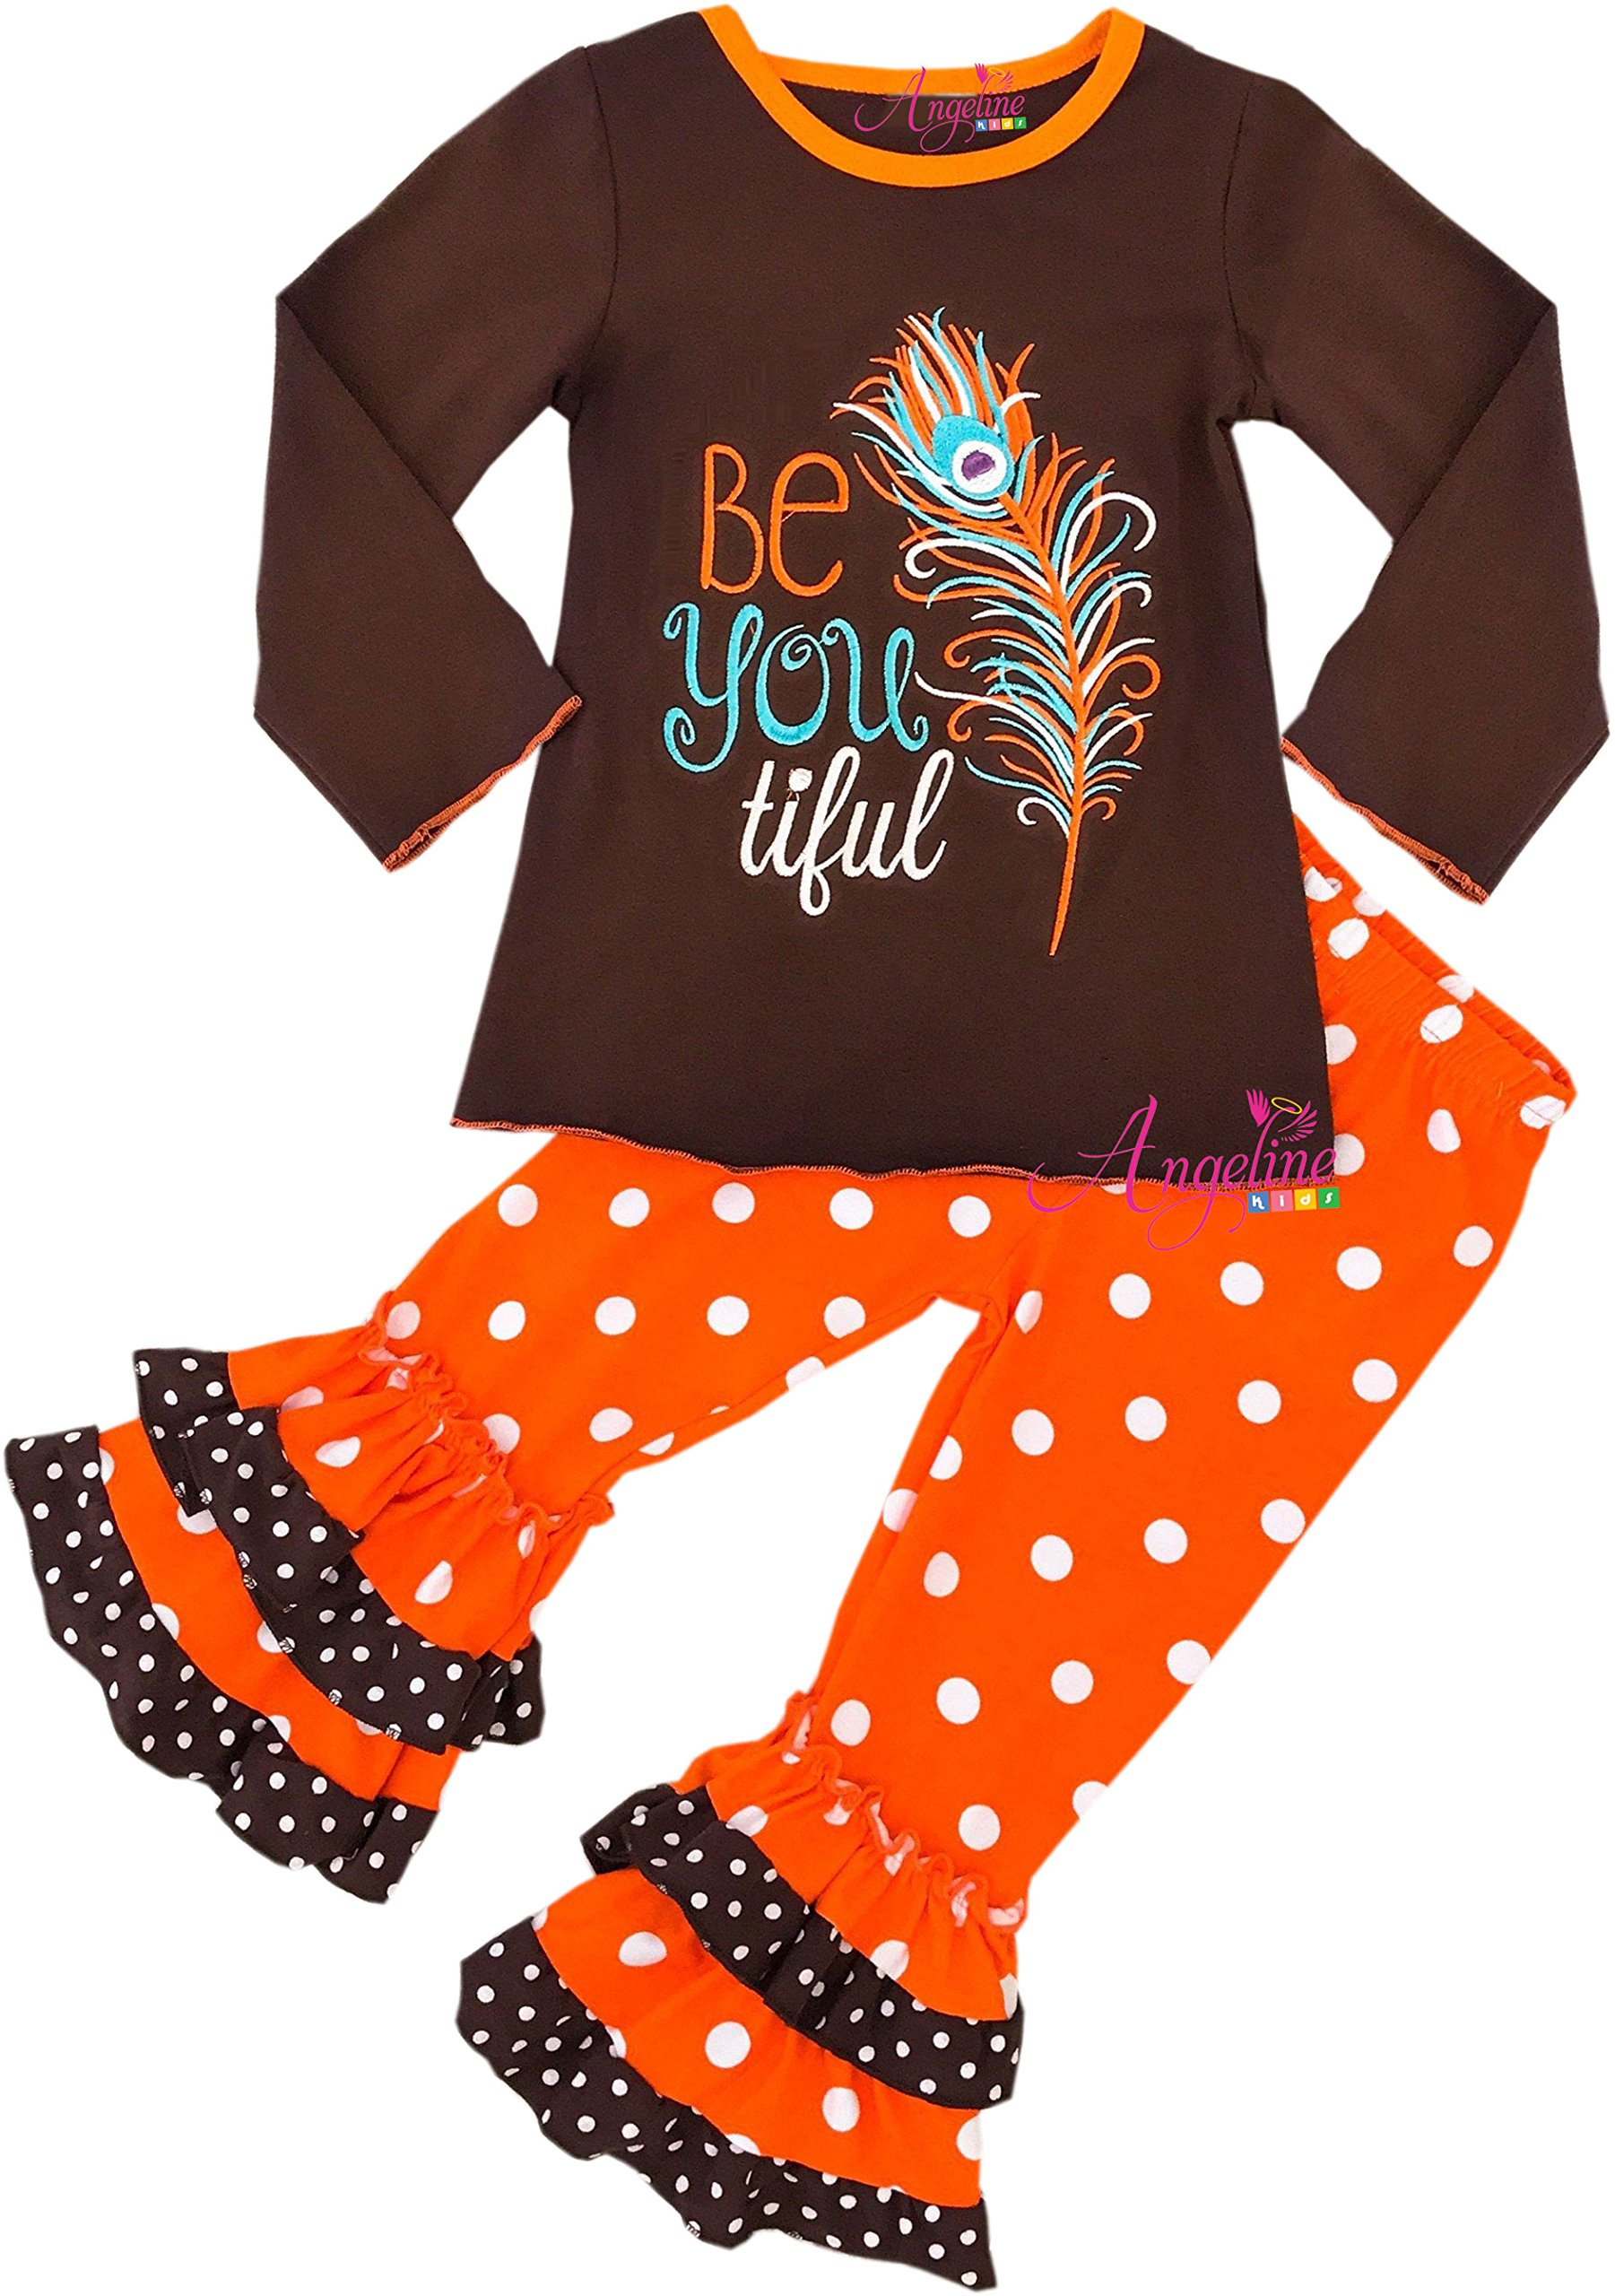 Boutique Clothing Girls Fall Thanksgiving Be Youtiful Ruffle Polka Dots Pant Set 3T/S